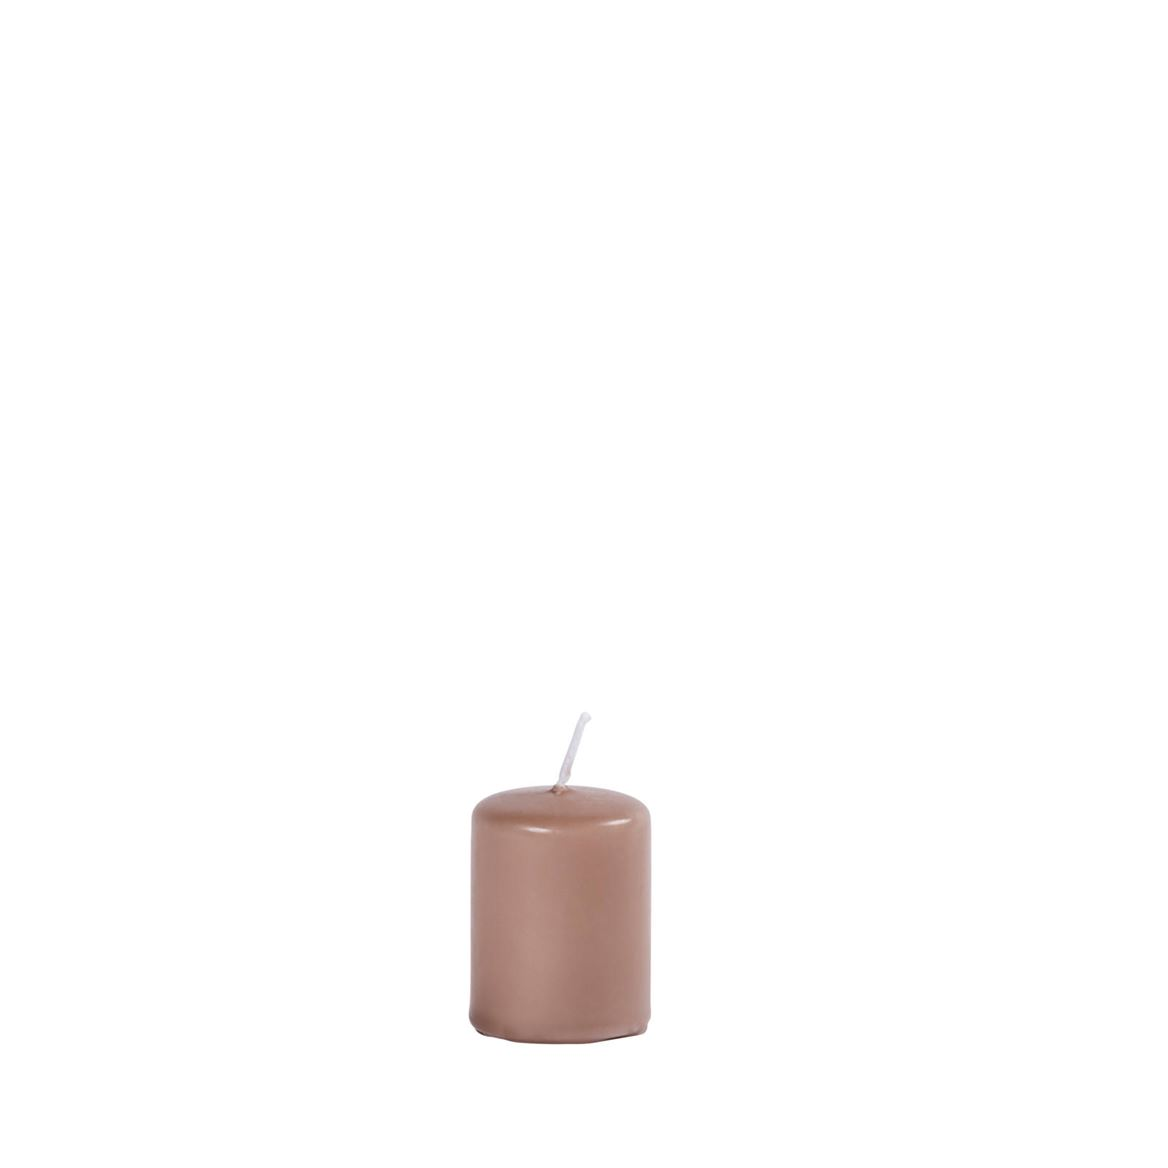 CILINDRO Candela taupe H 5 cm; Ø 4 cm_cilindro-candela-taupe-h-5-cm;-ø-4-cm